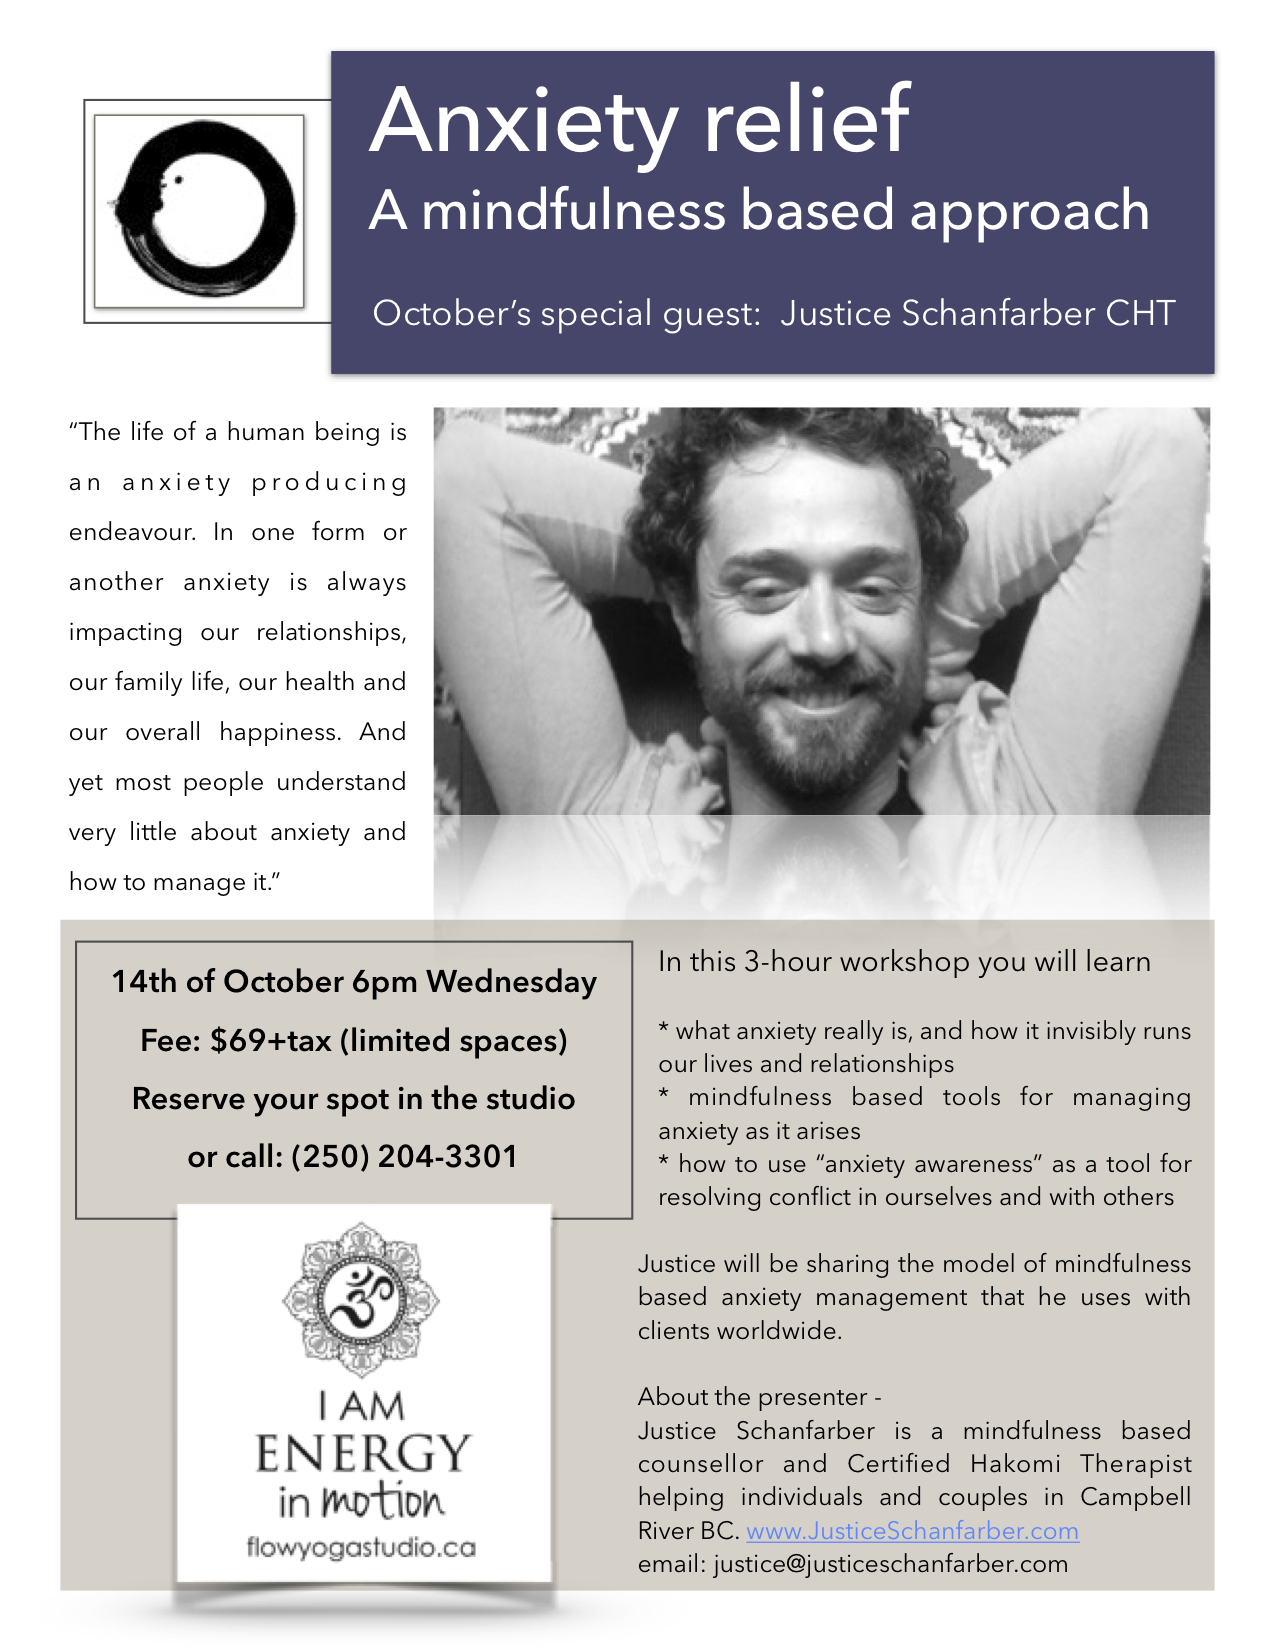 Anxiety relief mindfulness workshop